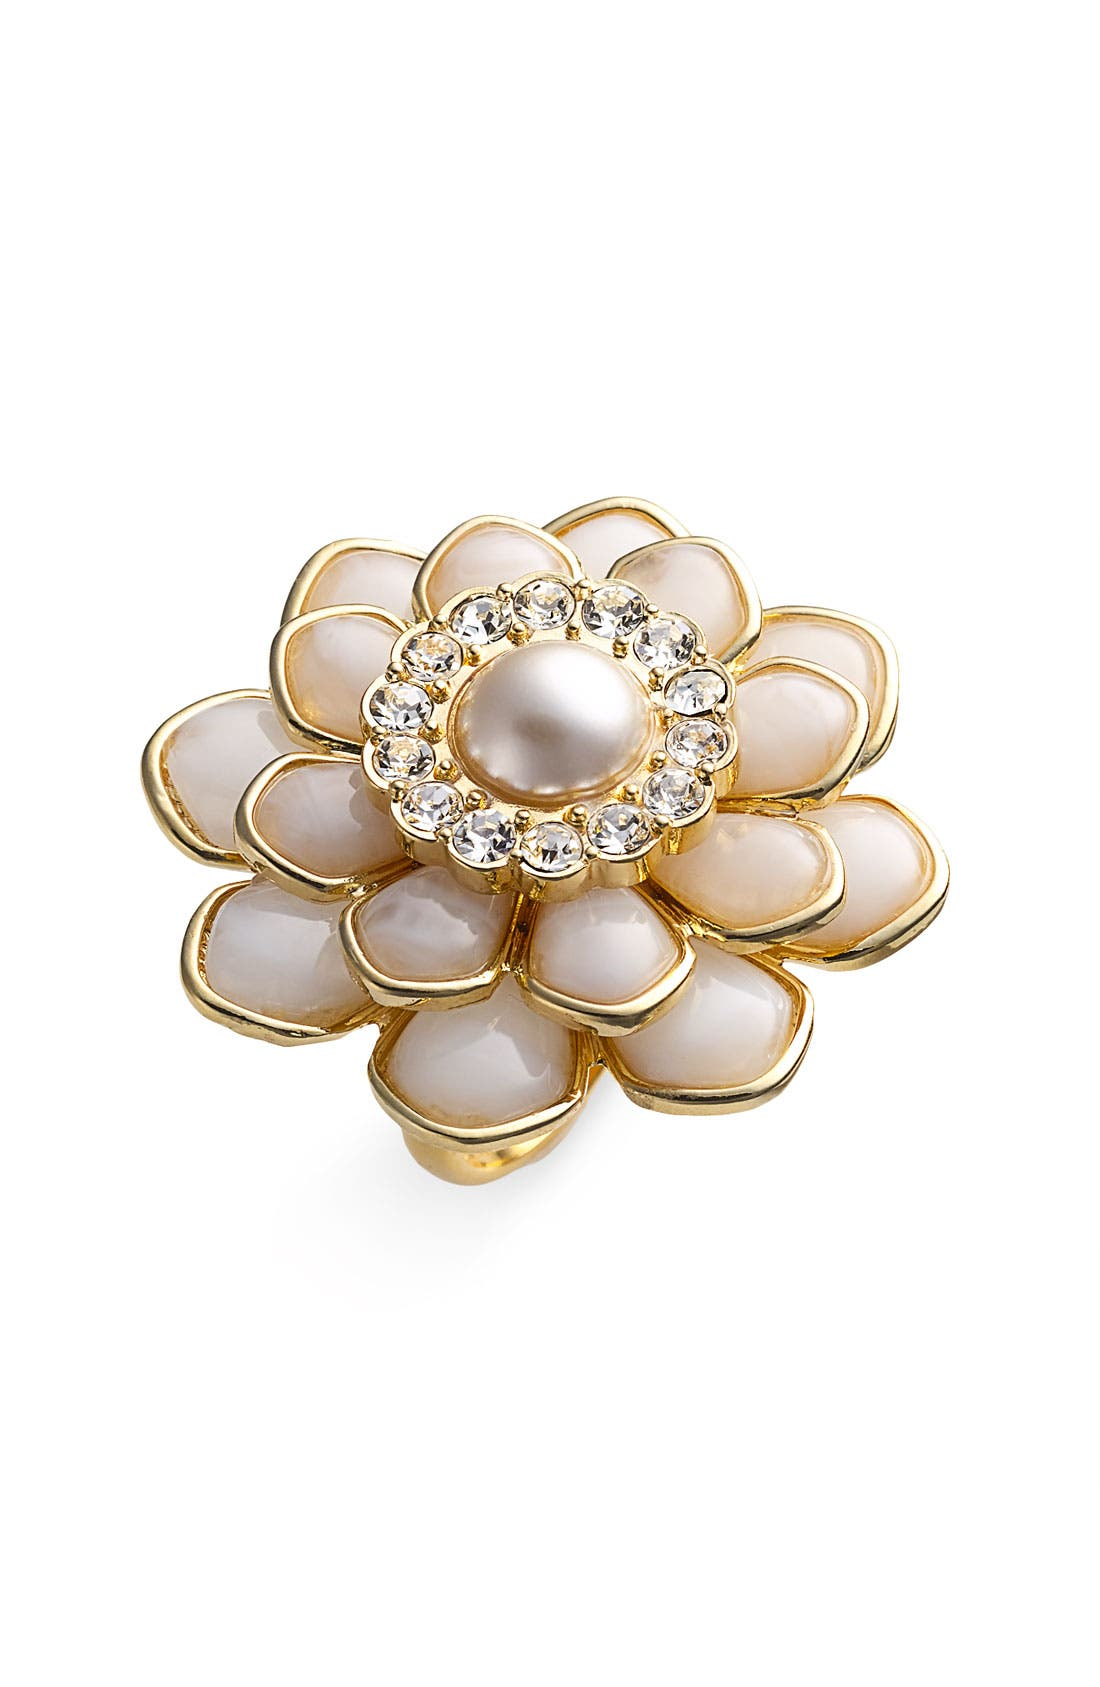 Alternate Image 1 Selected - kate spade new york 'sweet zinnia' oversized floral ring